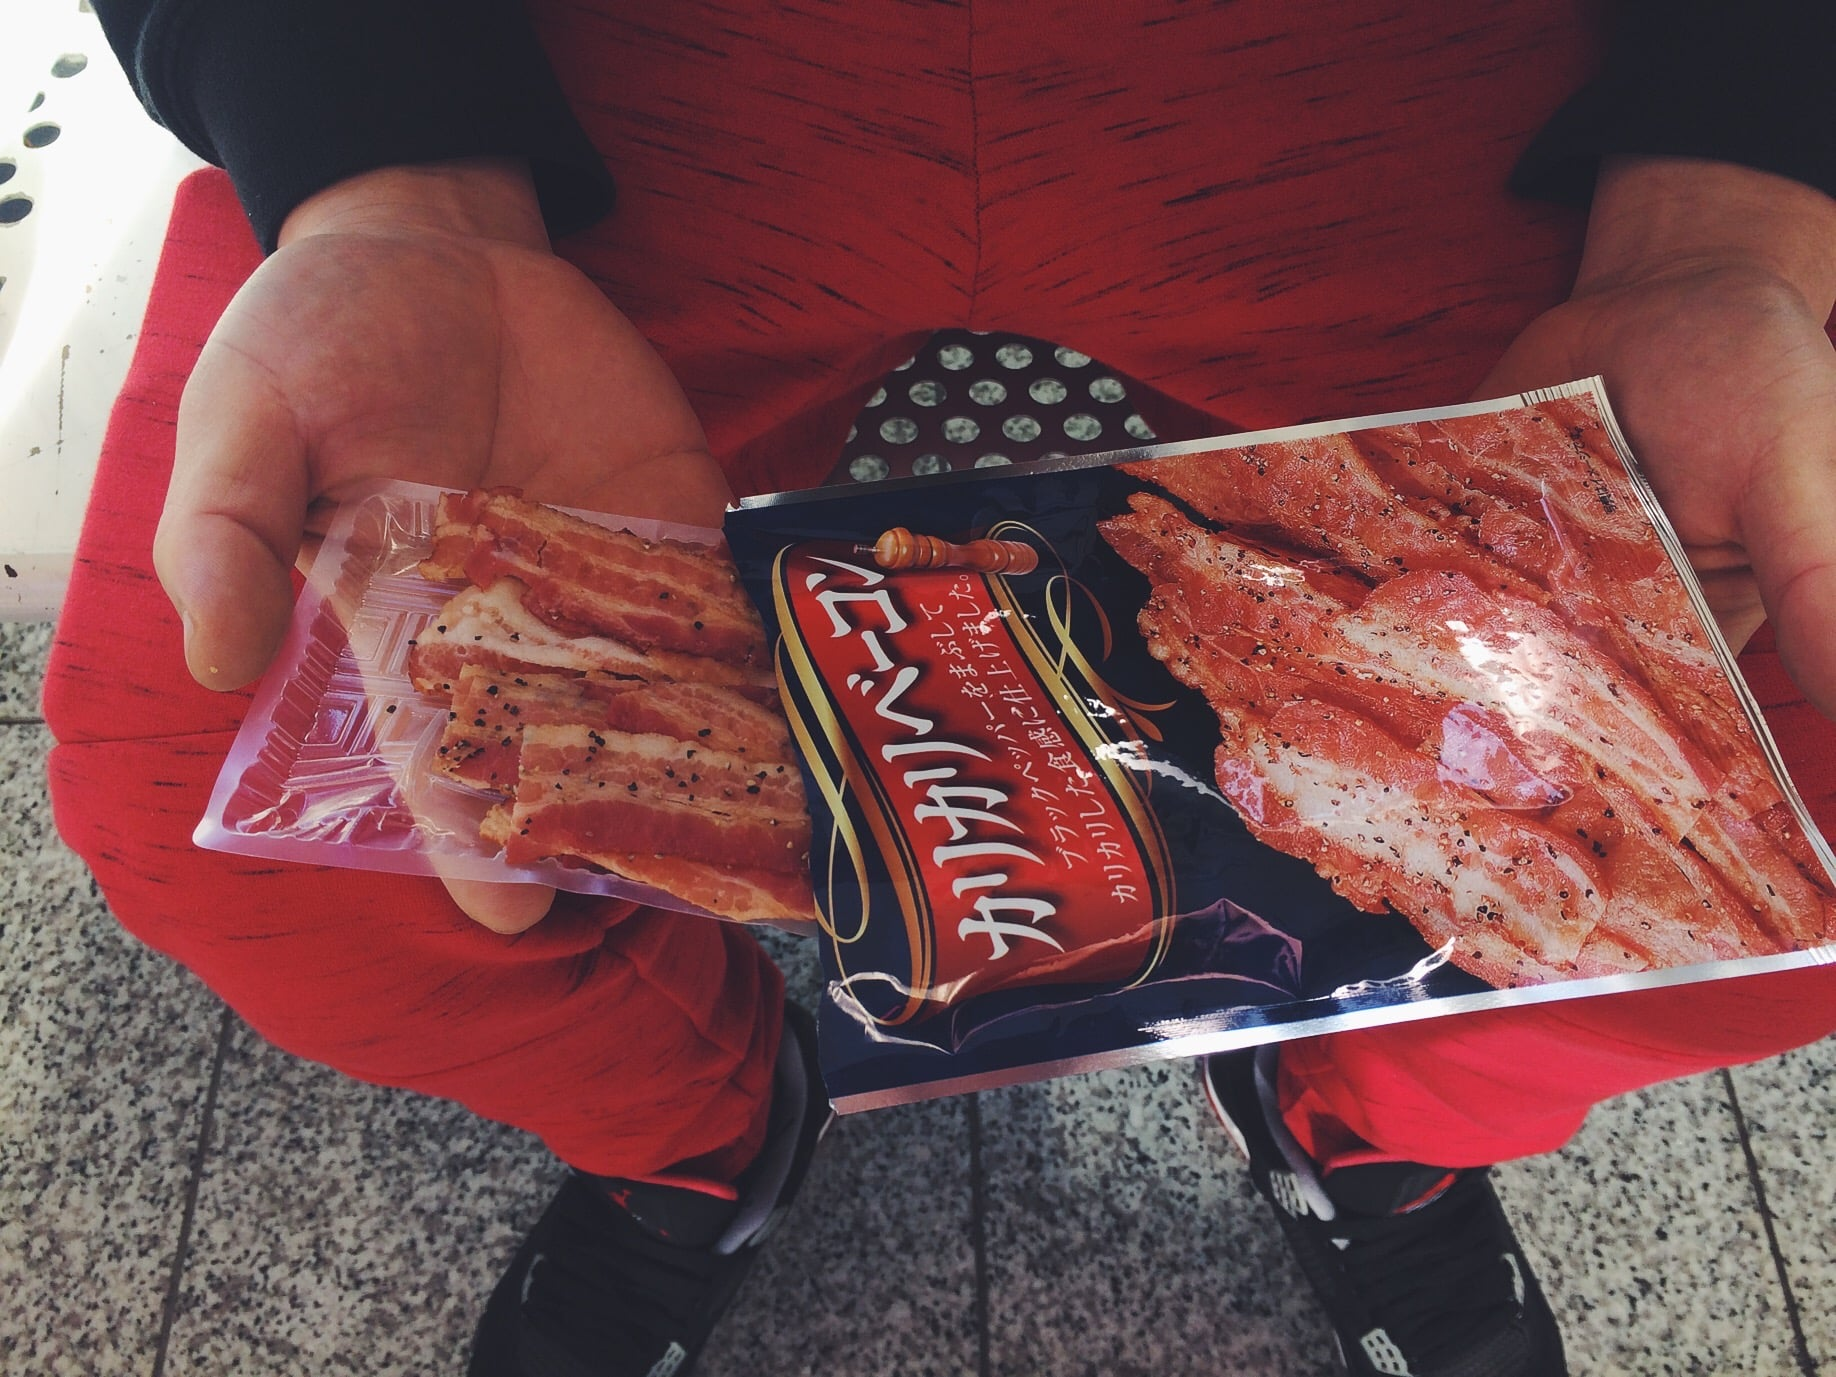 Robert is always buying bacon anything.